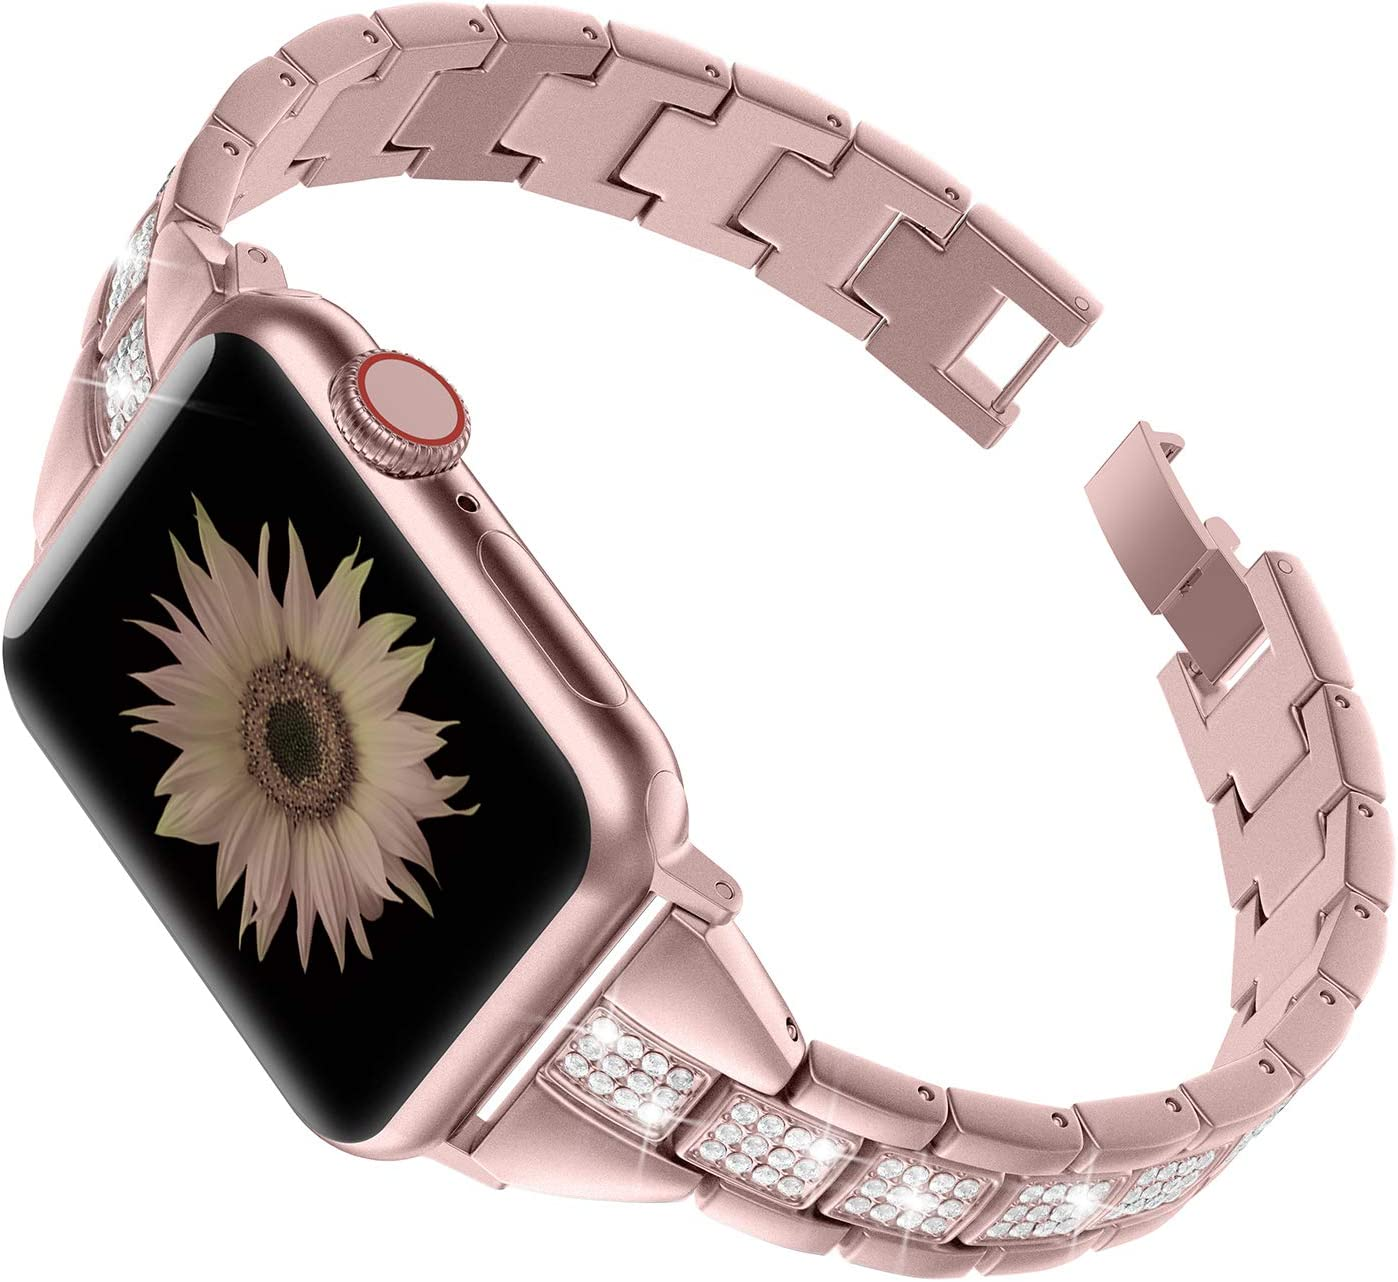 TOYOUTHS Bling Bands Compatible with Apple Watch Band 38mm 40mm iWatch Series 5/4/3/2/1 Stainless Steel Strap for Women Metal Link Bracelet Replacement Wristband Dressy Accessory Rose Gold